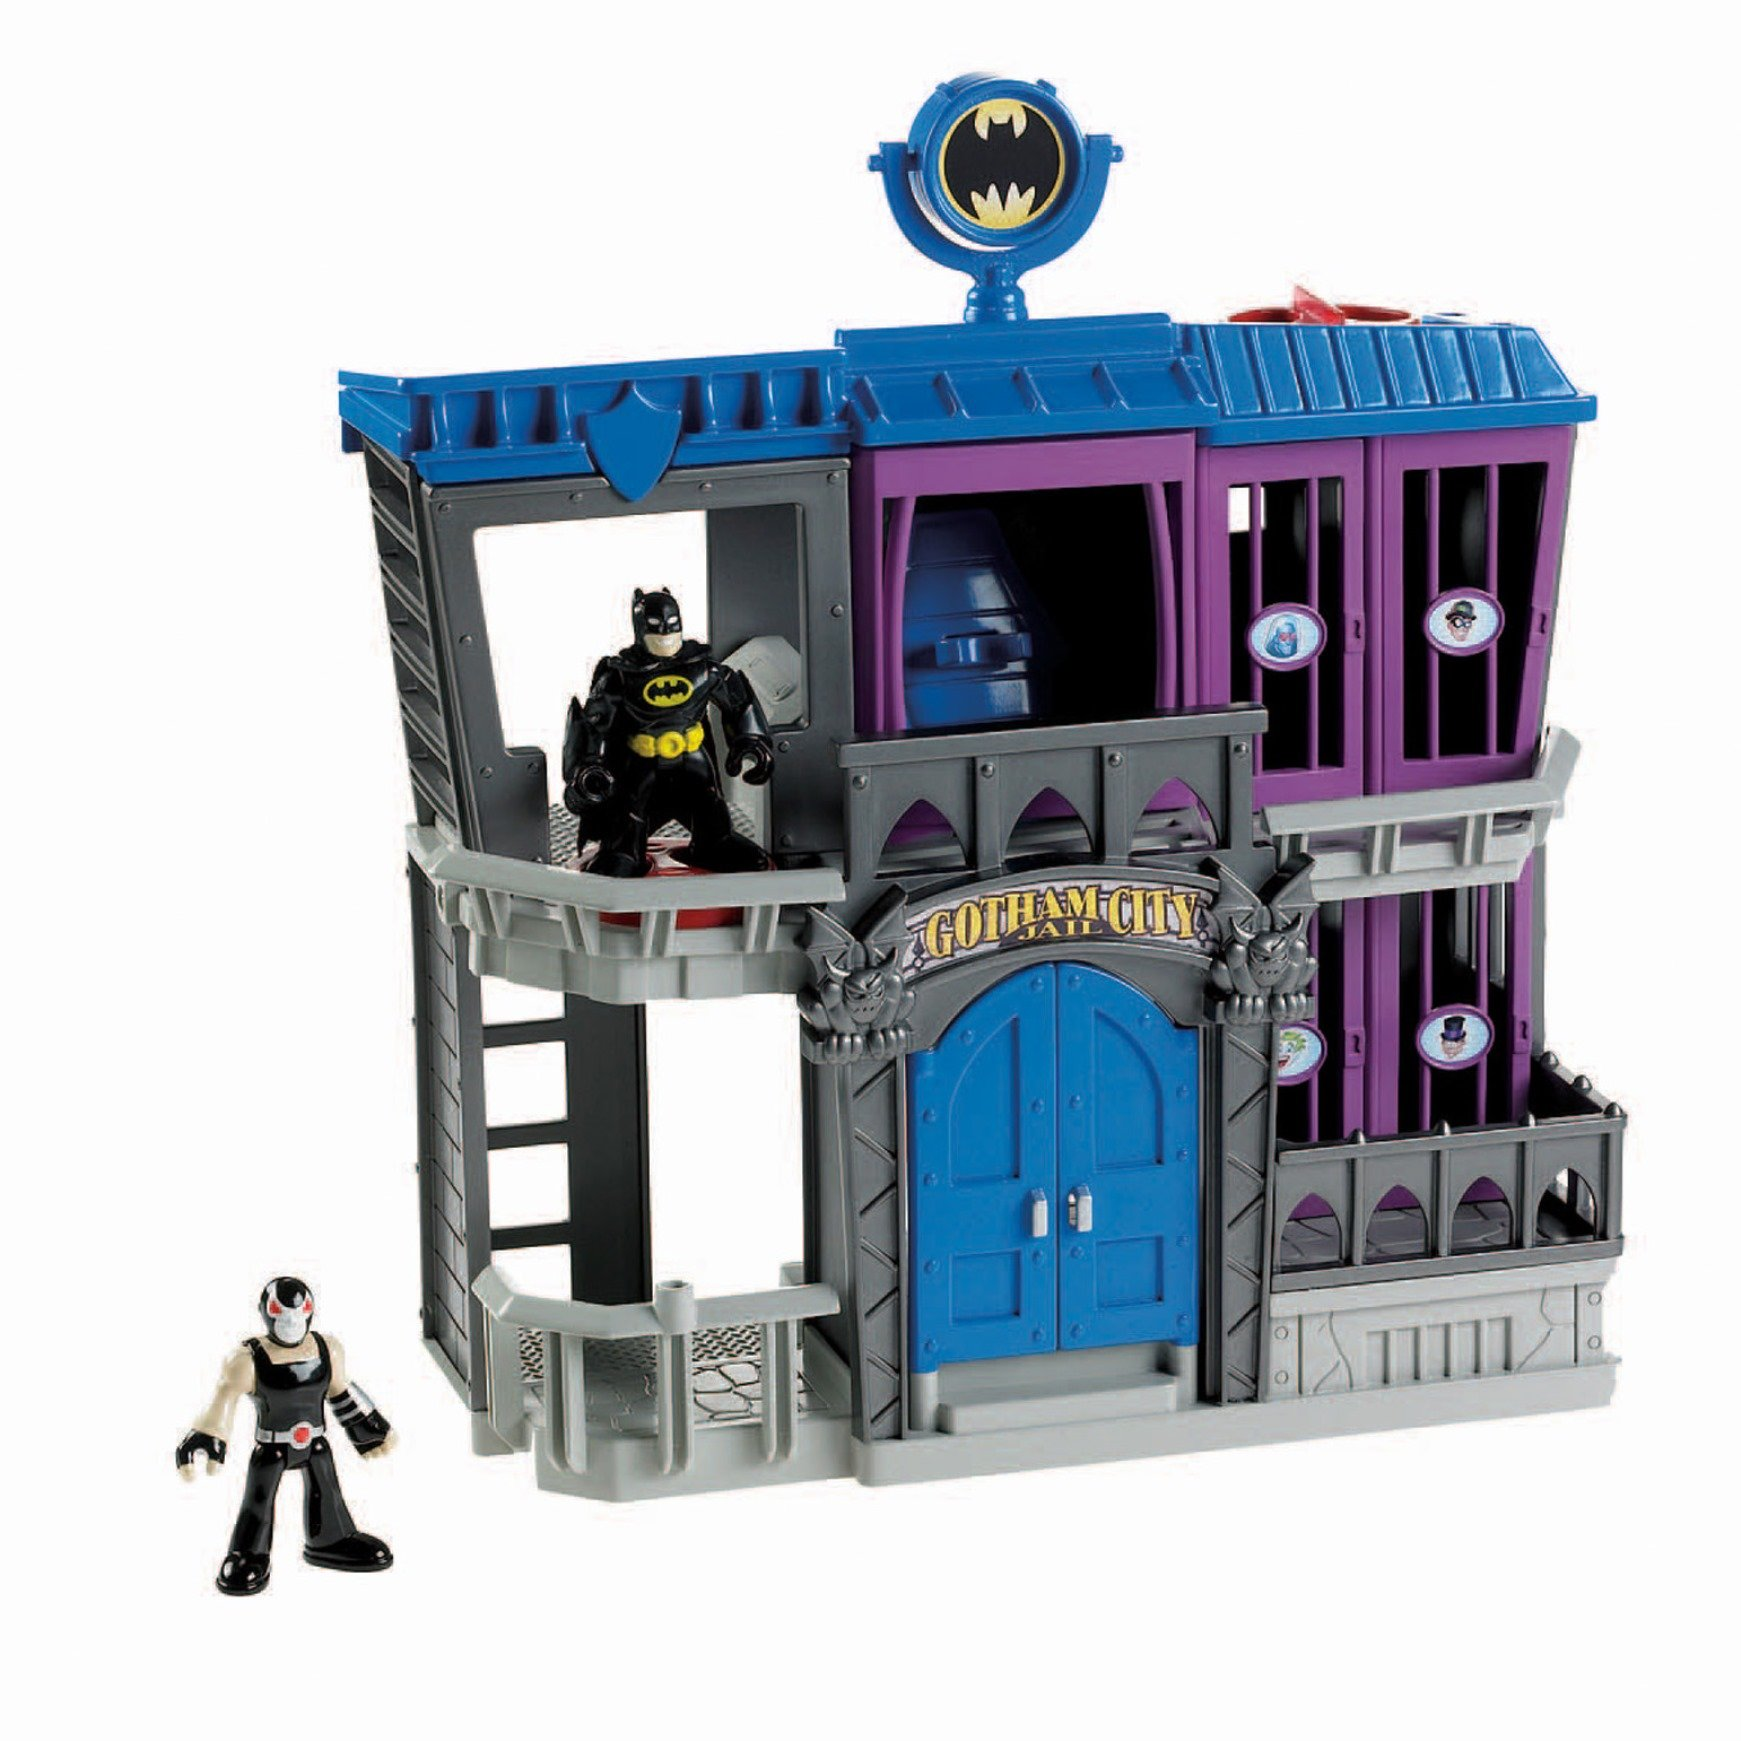 Fisher-Price Imaginext DC Super Friends, Gotham City Jail by Fisher-Price